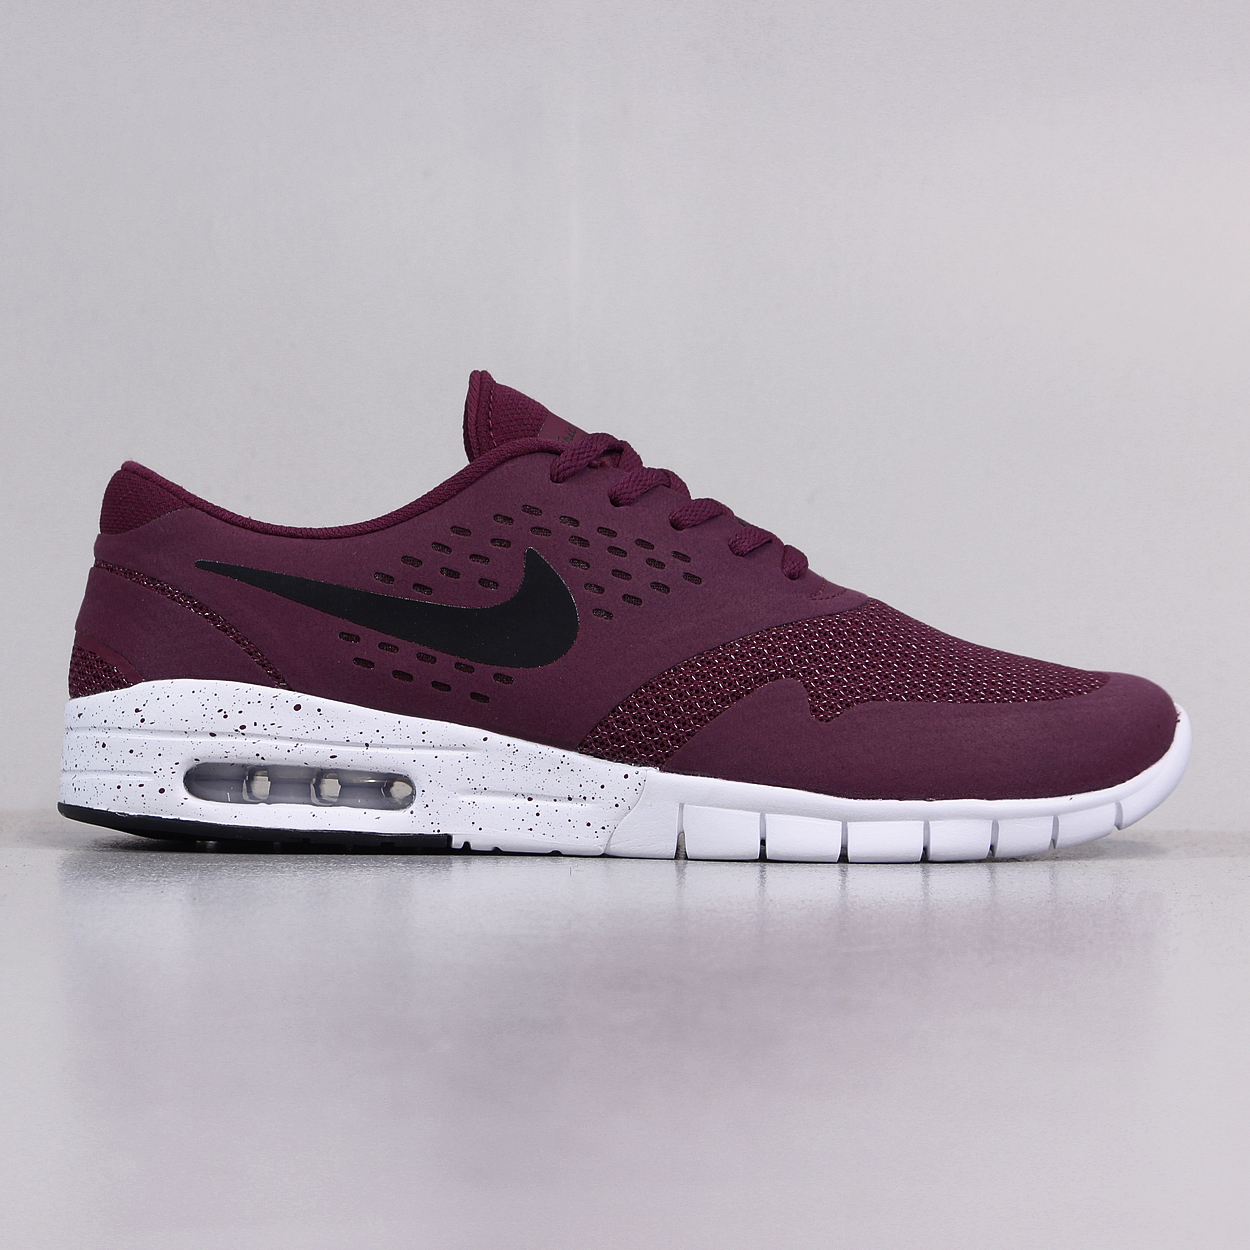 low priced a9432 05dd6 Nike SB Koston 2 Max Mens Skate Shoes Villain Red Black White £70.88